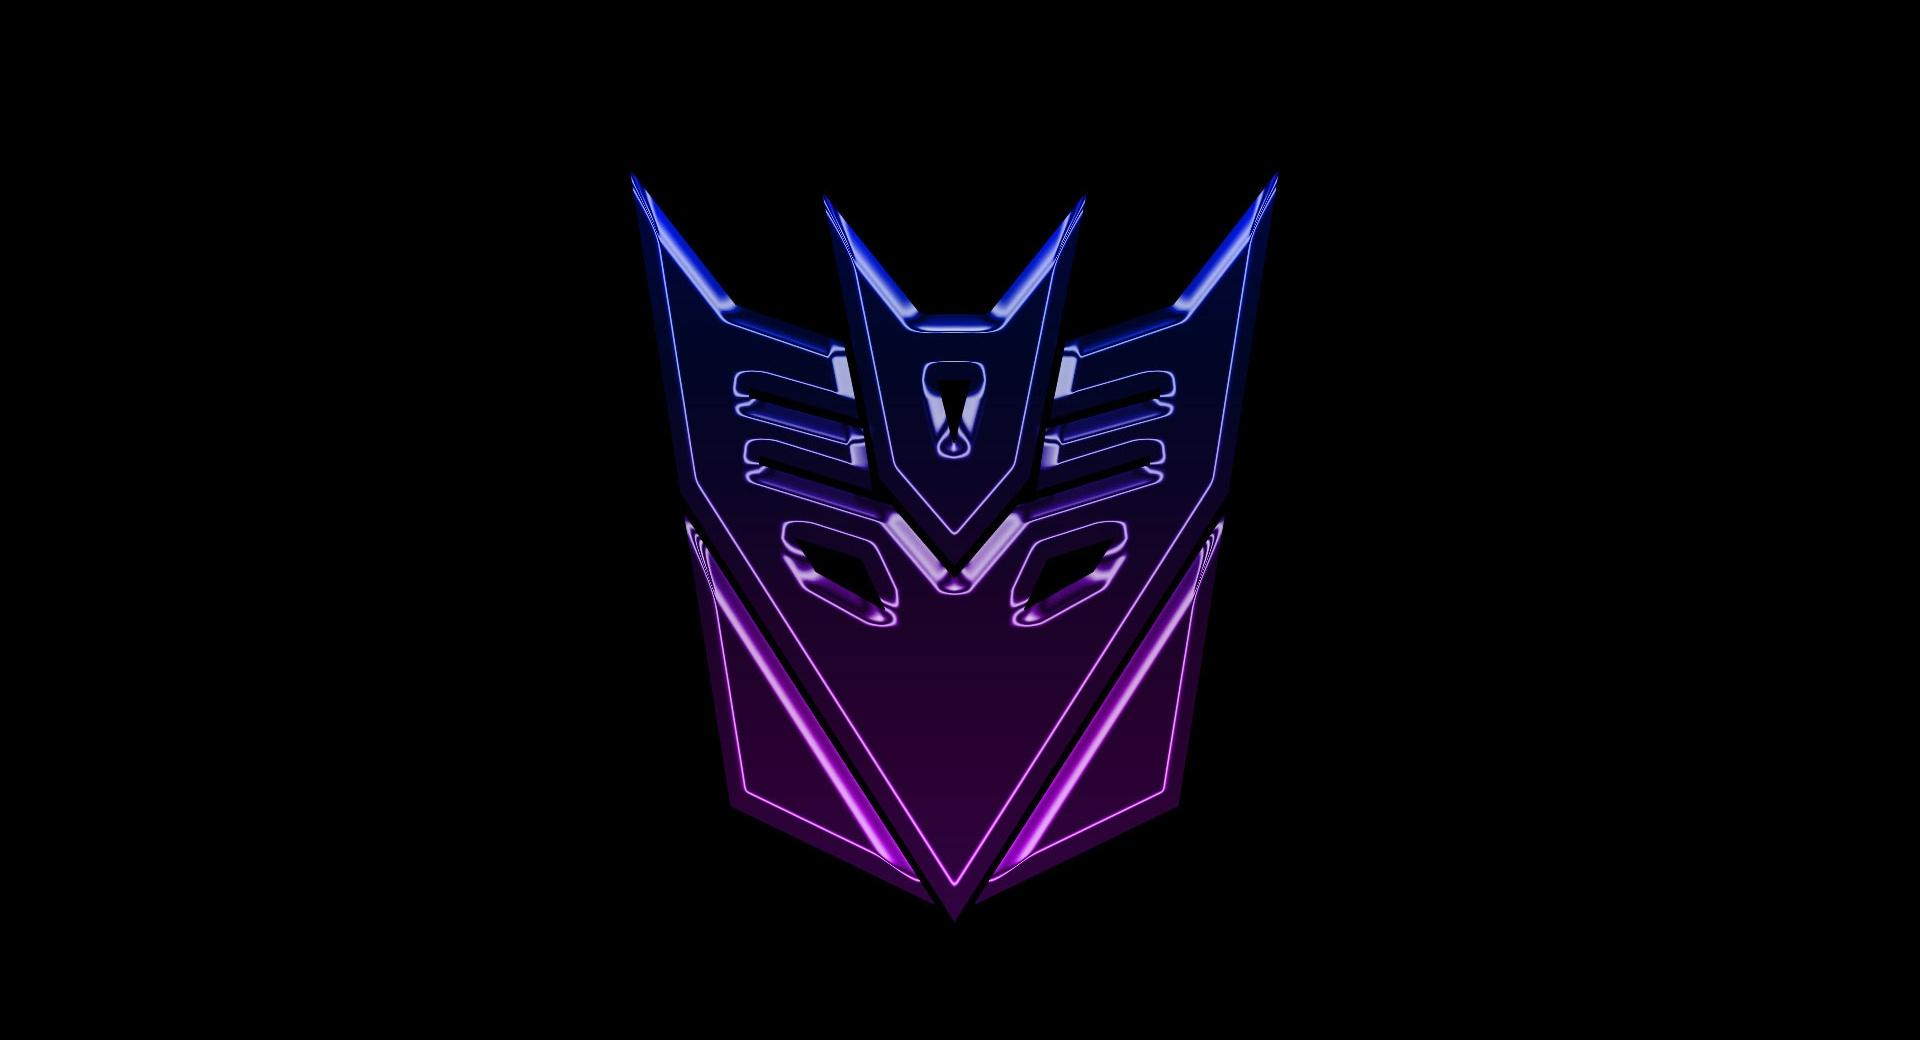 Transformers Decepticons Logo Widescreen wallpapers HD quality